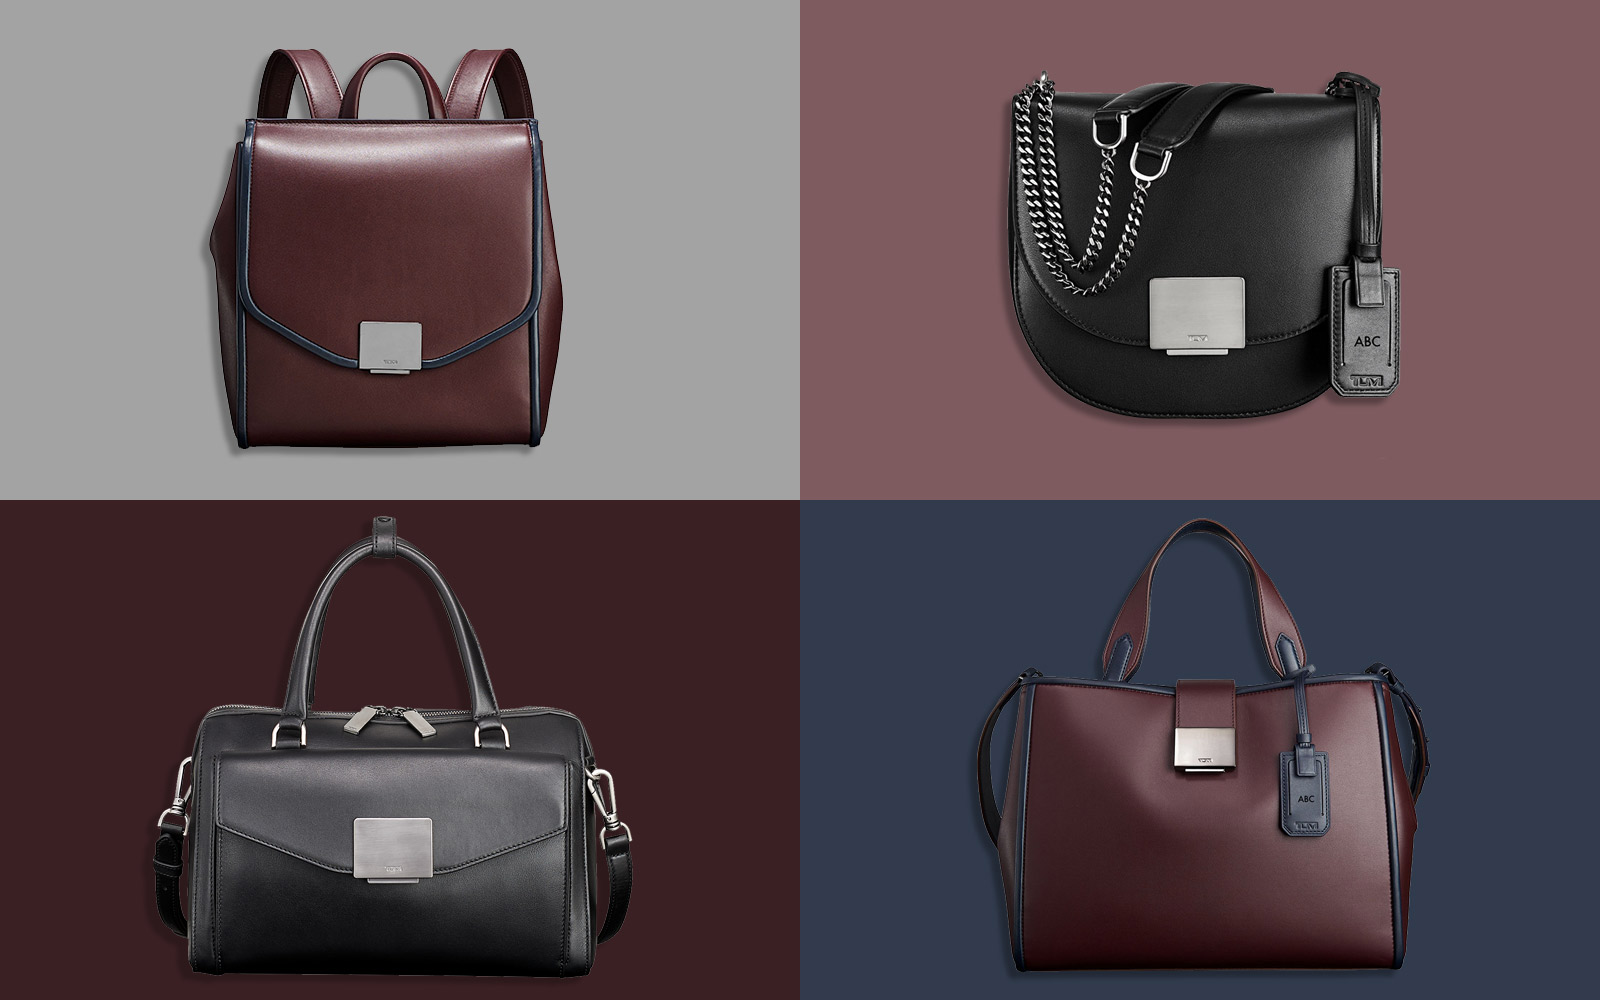 This Luxury Luggage Brand Now Makes the Most Gorgeous Everyday Handbags